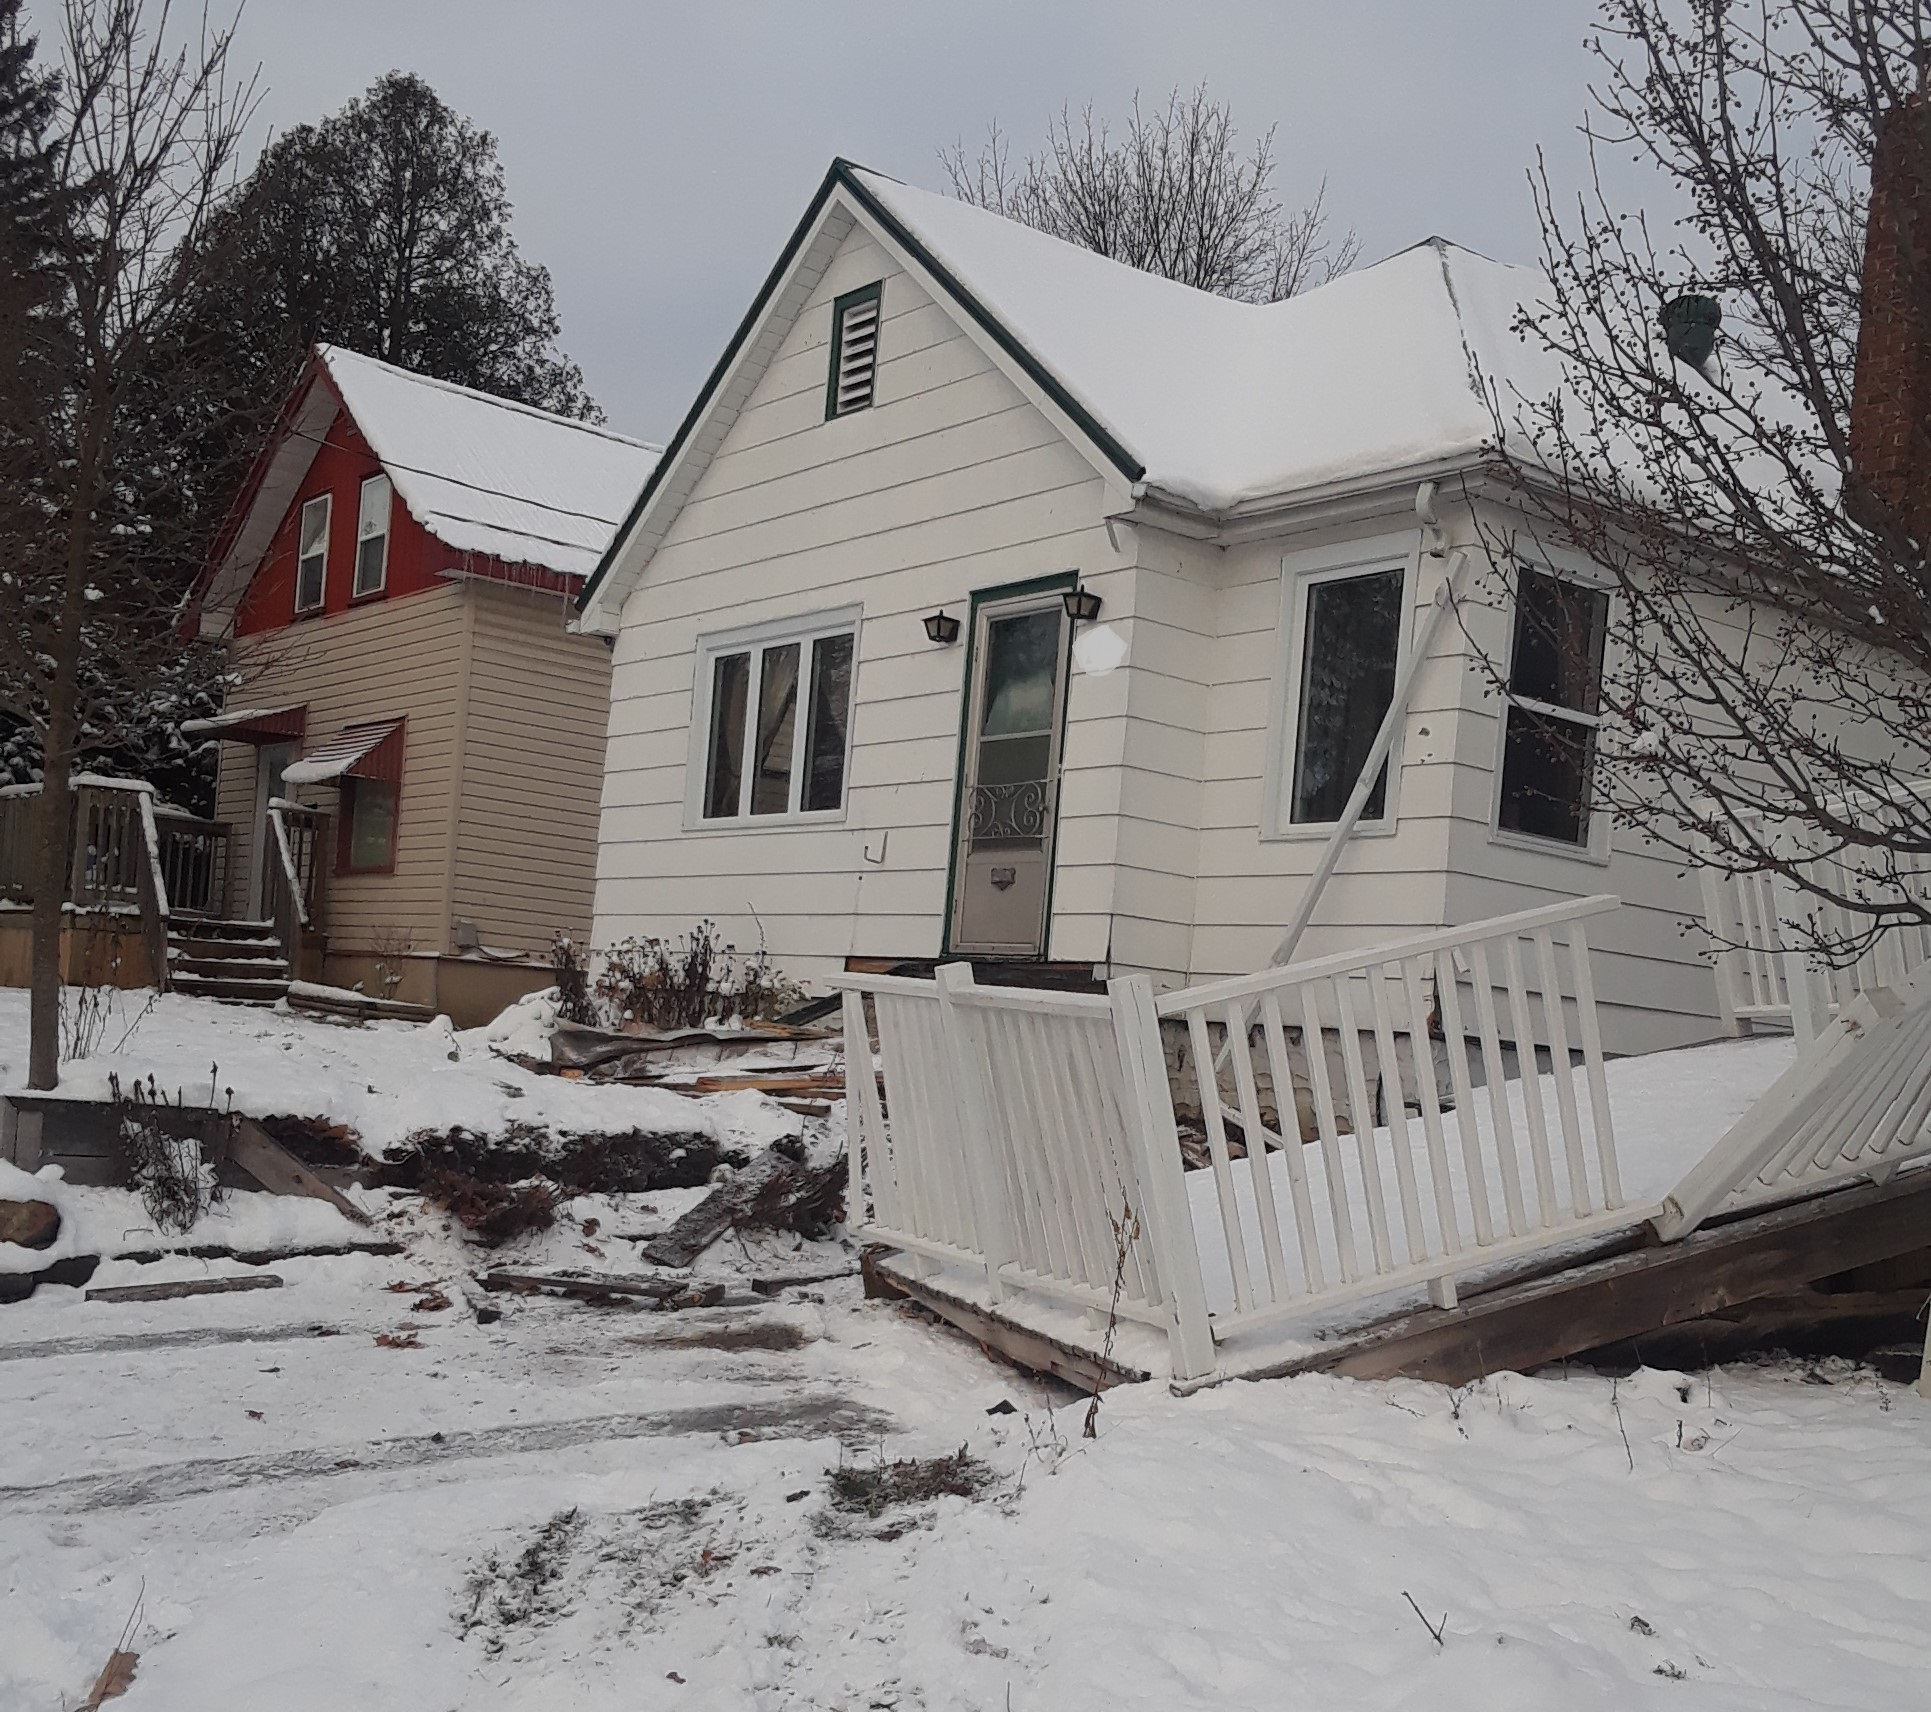 Novice driver charged after crashing into two houses in Orillia